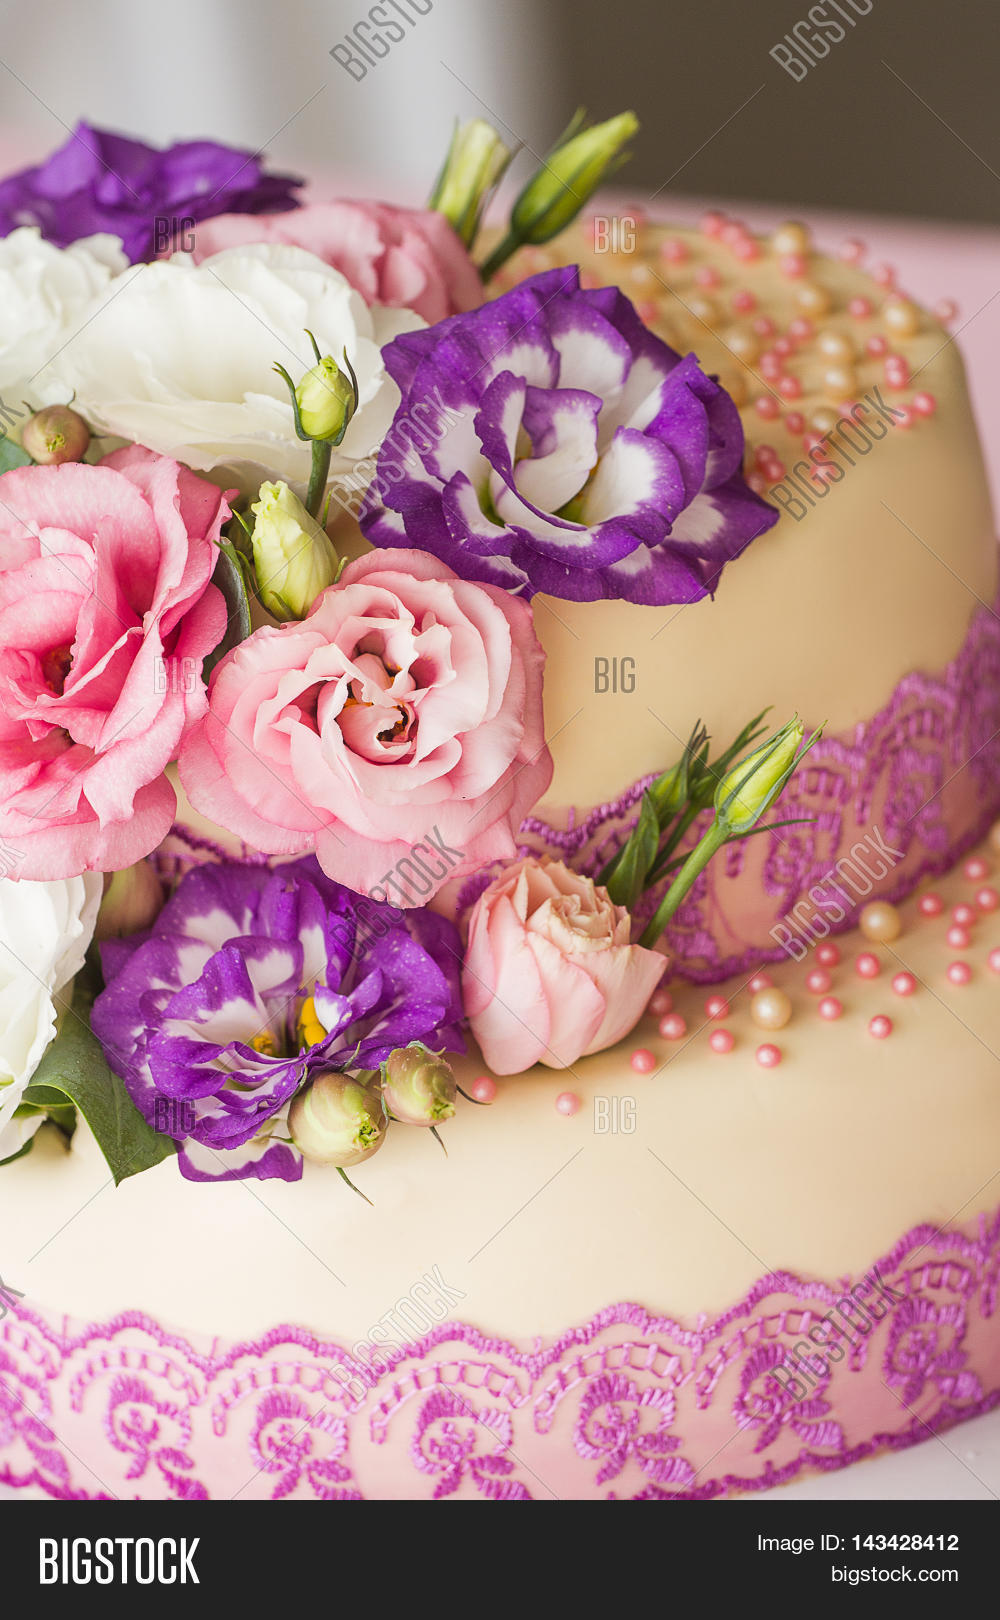 Cake Ivory Color Image & Photo (Free Trial) | Bigstock